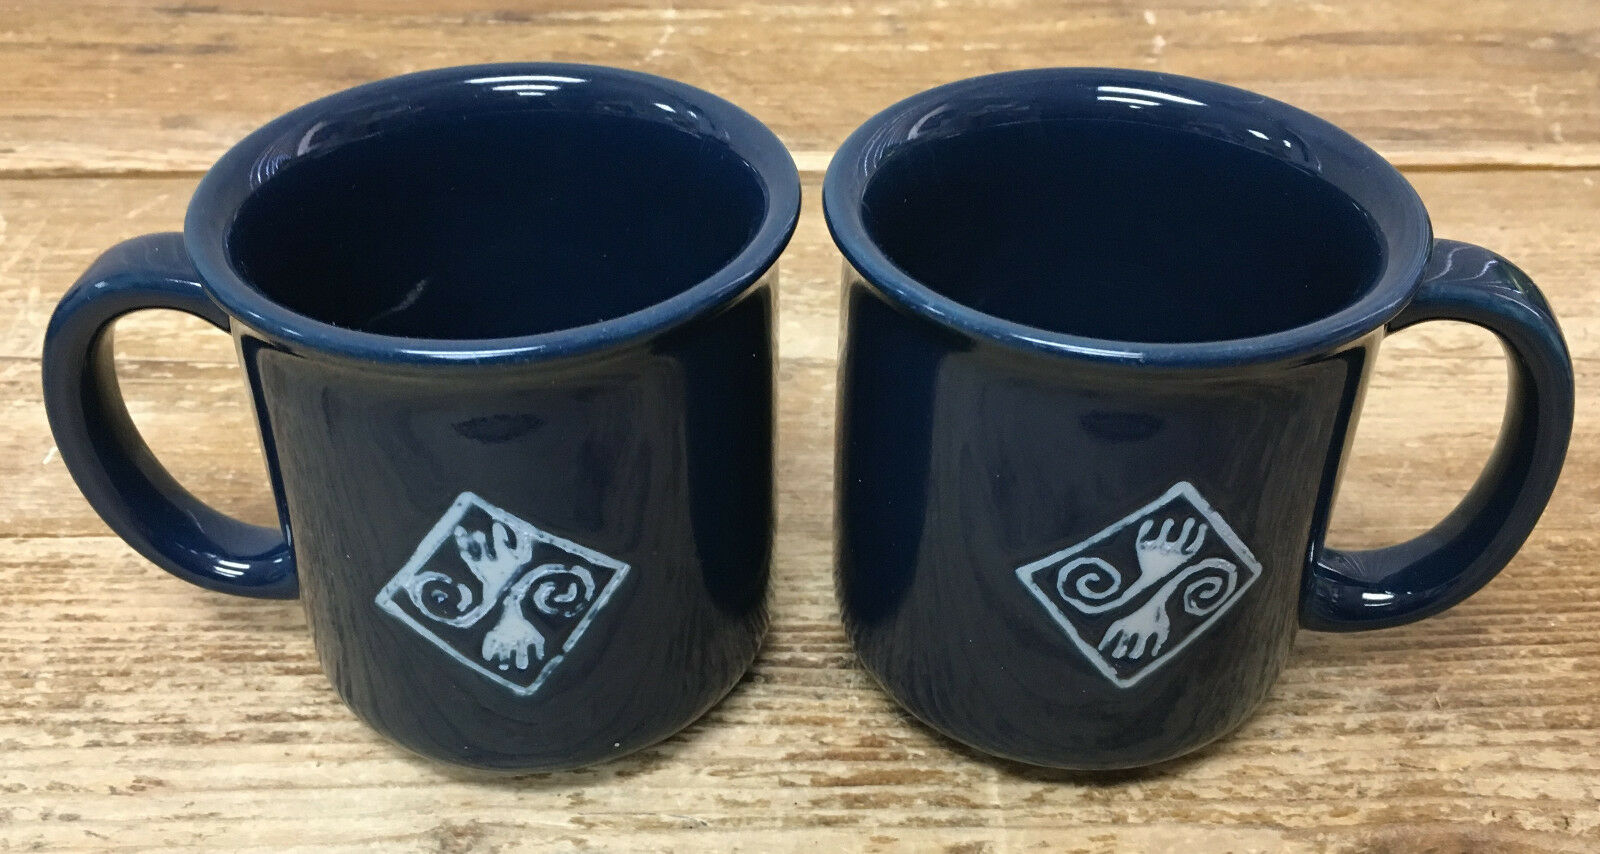 2 Tazze da Caffè Crown Corning Prego Native Collection Navy Blu Cobalto Giappone